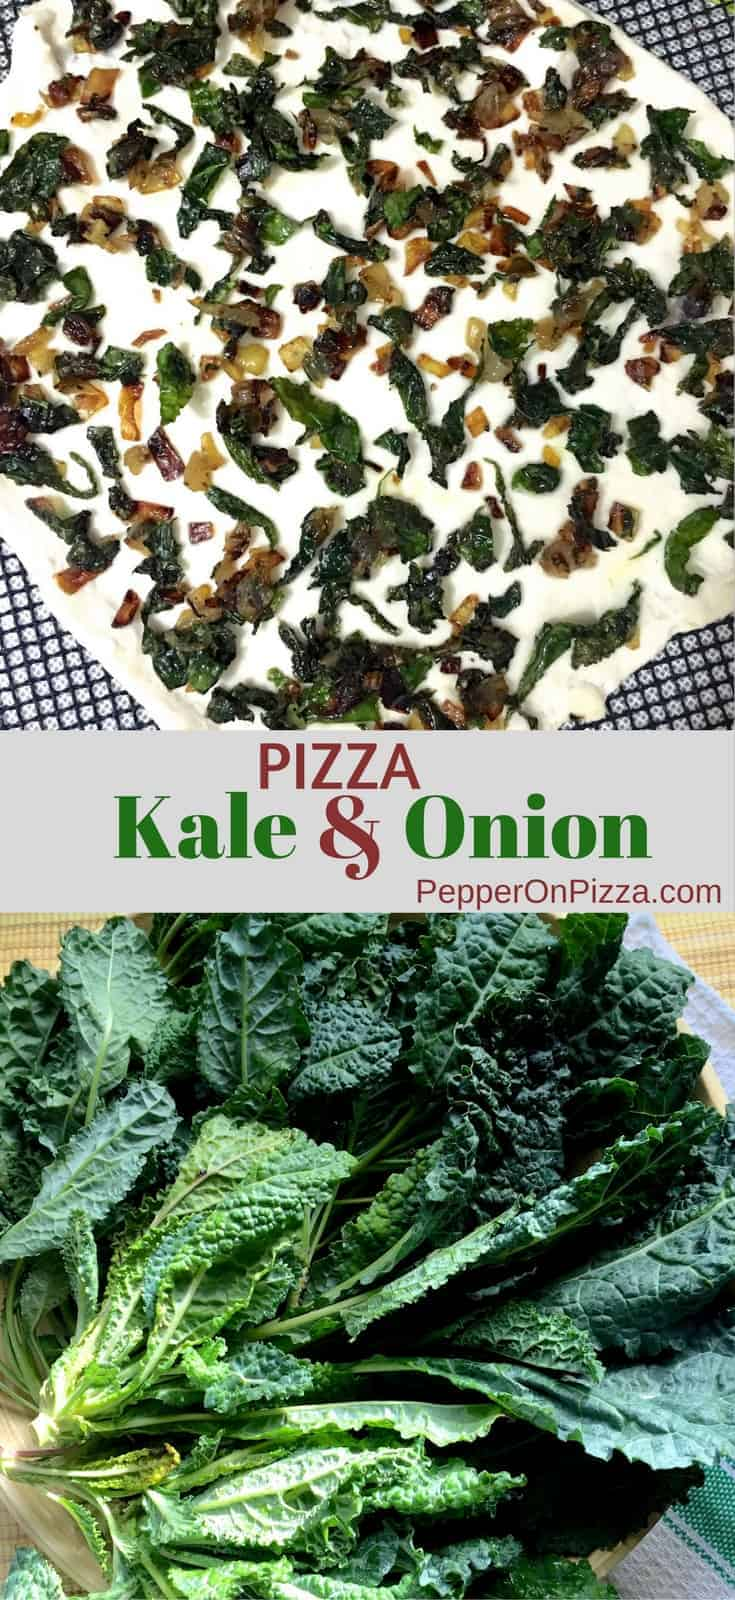 Kale and Onion Pizza_Pepperonpizza.com